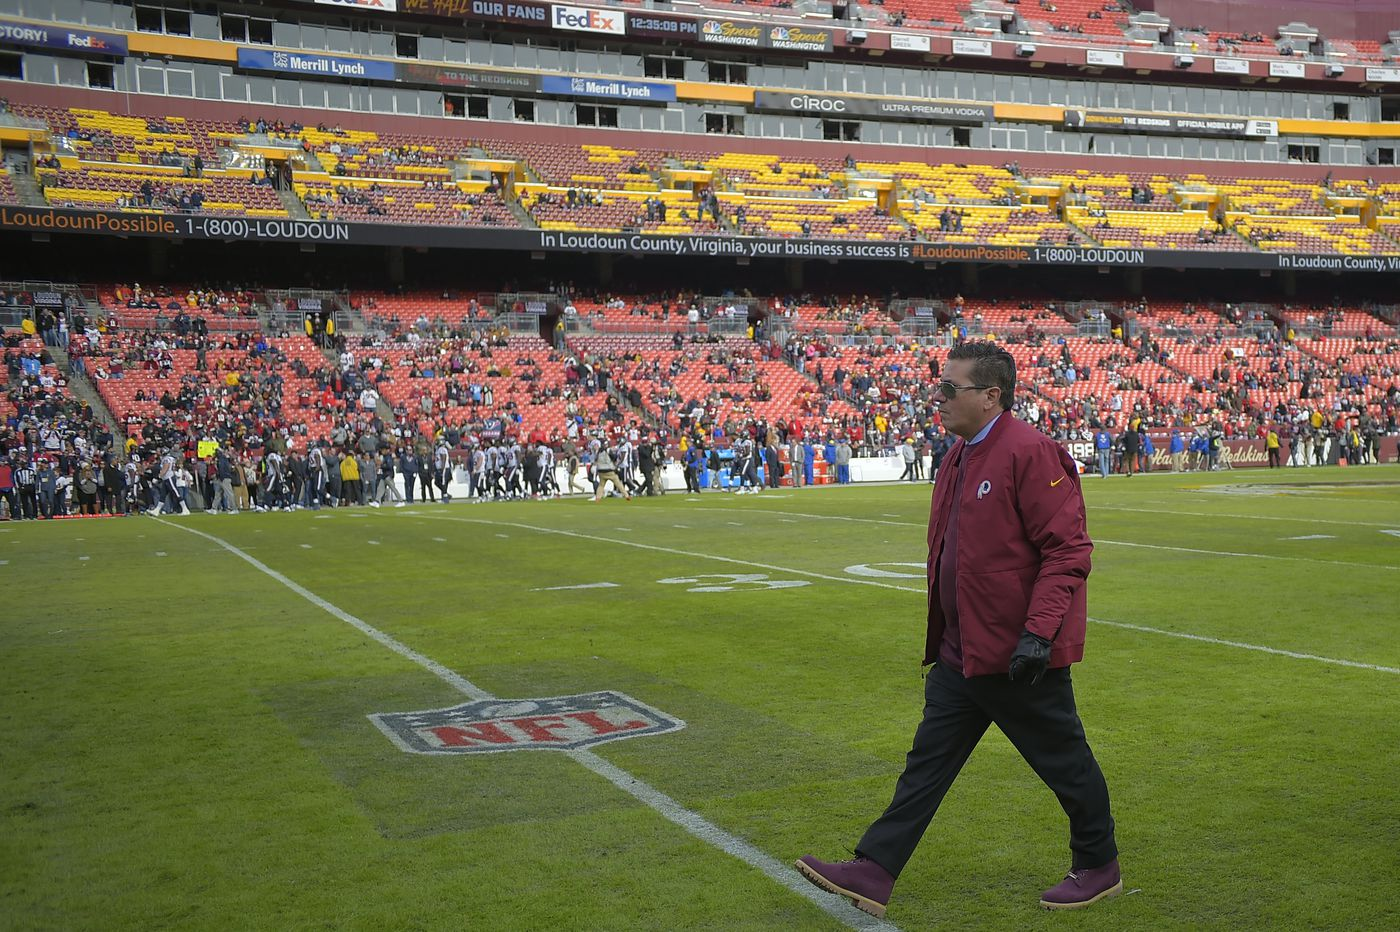 Washington Football Team owner Daniel Snyder reportedly had lewd video of cheerleaders made